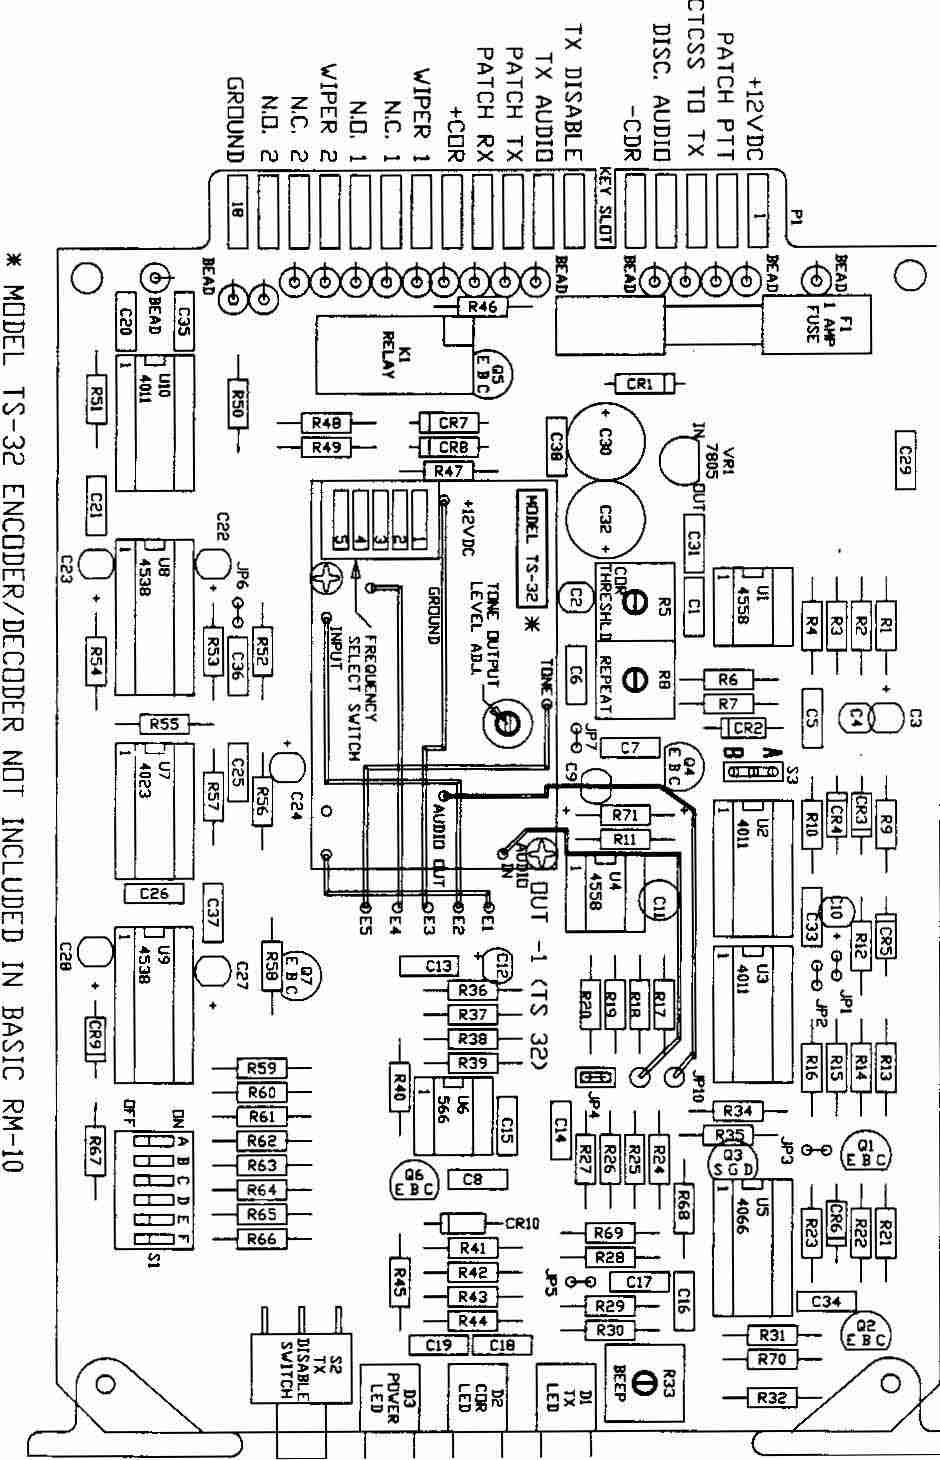 hight resolution of llv wiring diagram 88 wiring libraryrm1 2 whelen strobe wiring diagram whelen light wiring diagram